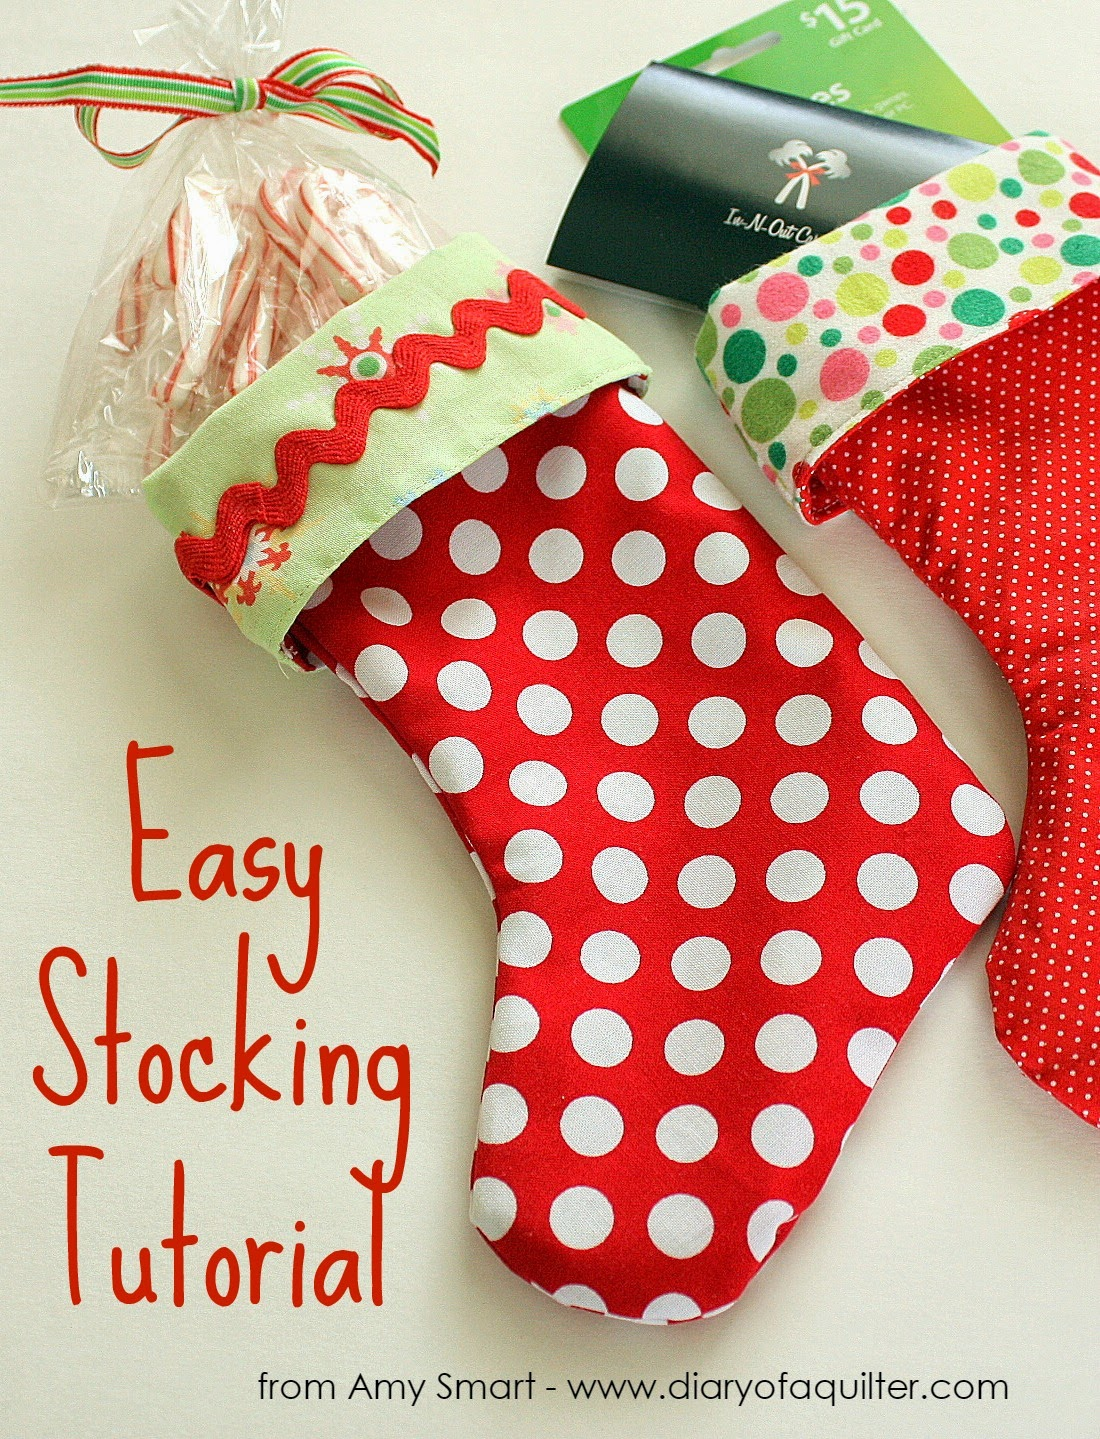 Easy Stocking DIY